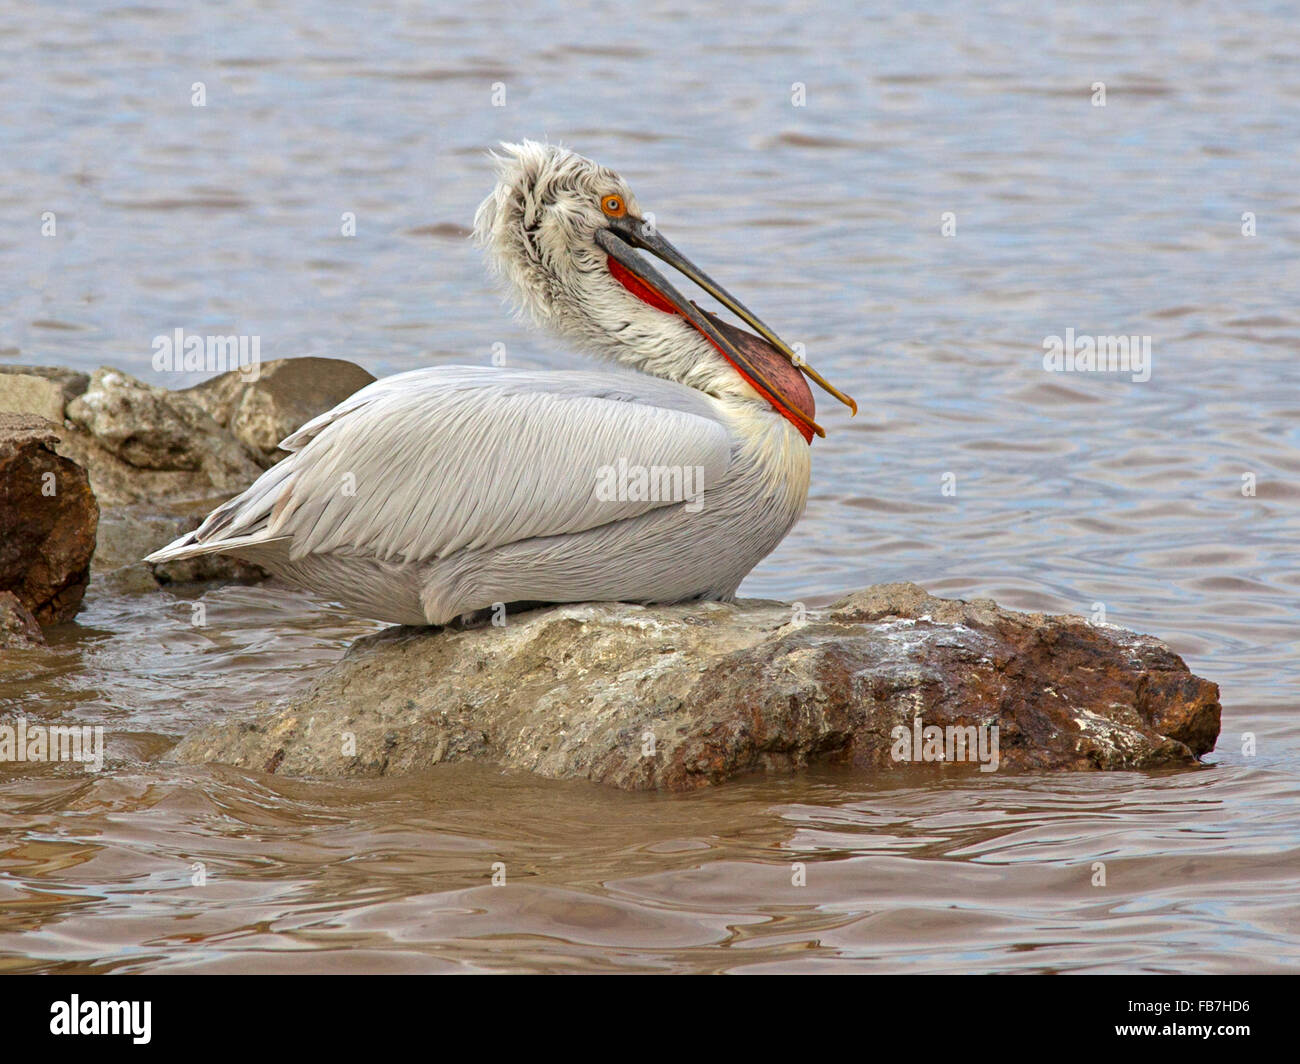 Dalmatian pelican perched on rock with fish - Stock Image